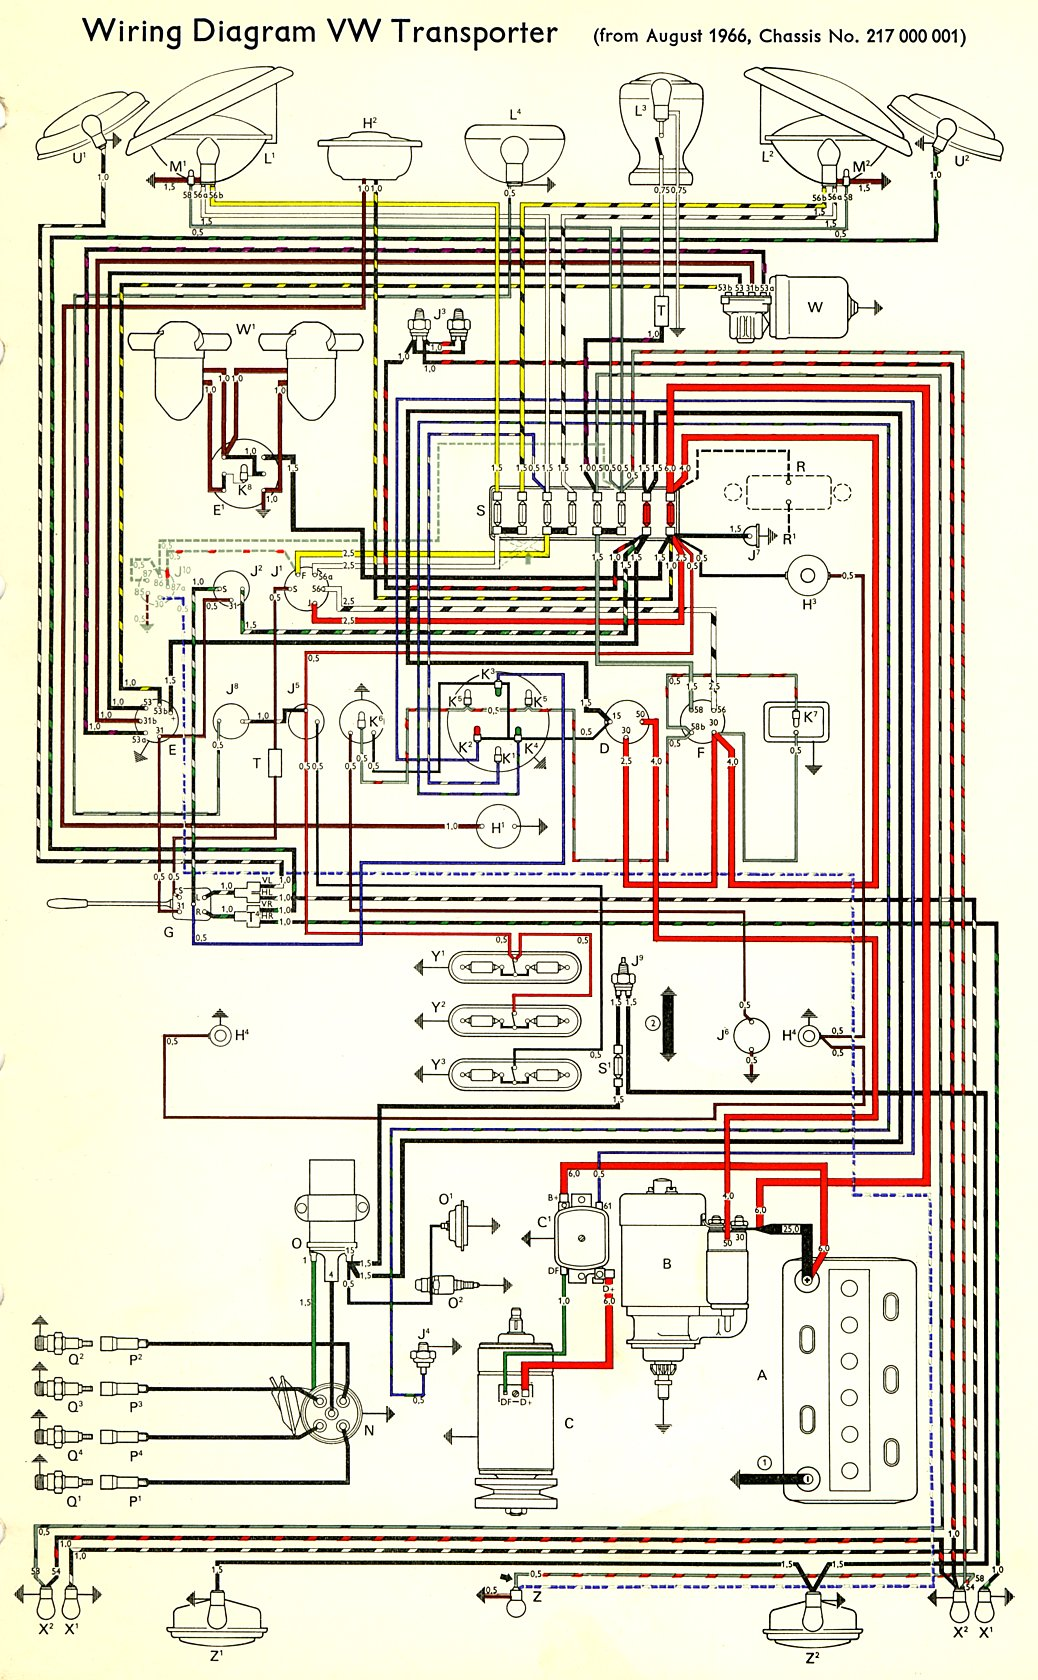 1979 Vw Beetle Fuse Diagram Wiring Schemes 2001 Hyundai Elantra Box 1967 Bus